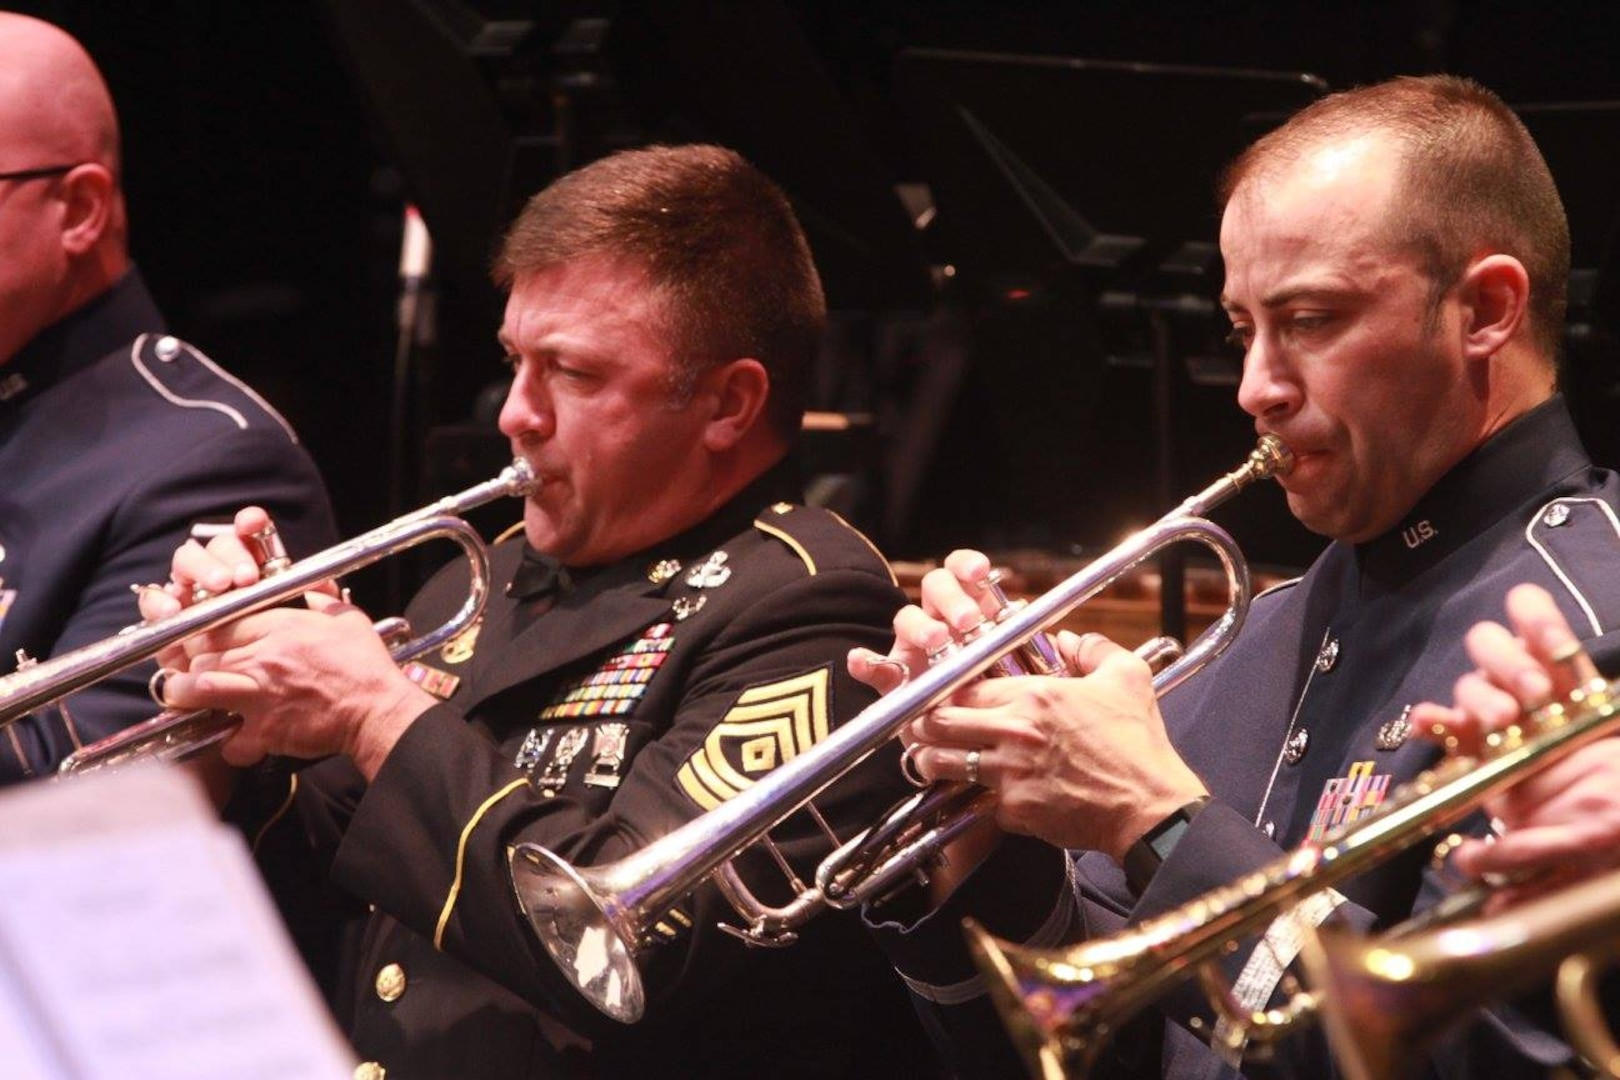 """Musicians from the U.S. Air Force Band of the West and the 323rd Army Band """"Fort Sam's Own"""" team up for a """"Holiday in Red, White and Blue"""" concert Dec. 9, 2017 at the Edgewood Performing Arts Center, 402 Lance St., in San Antonio. The annual performance is free and open to the public and is a holiday tradition."""